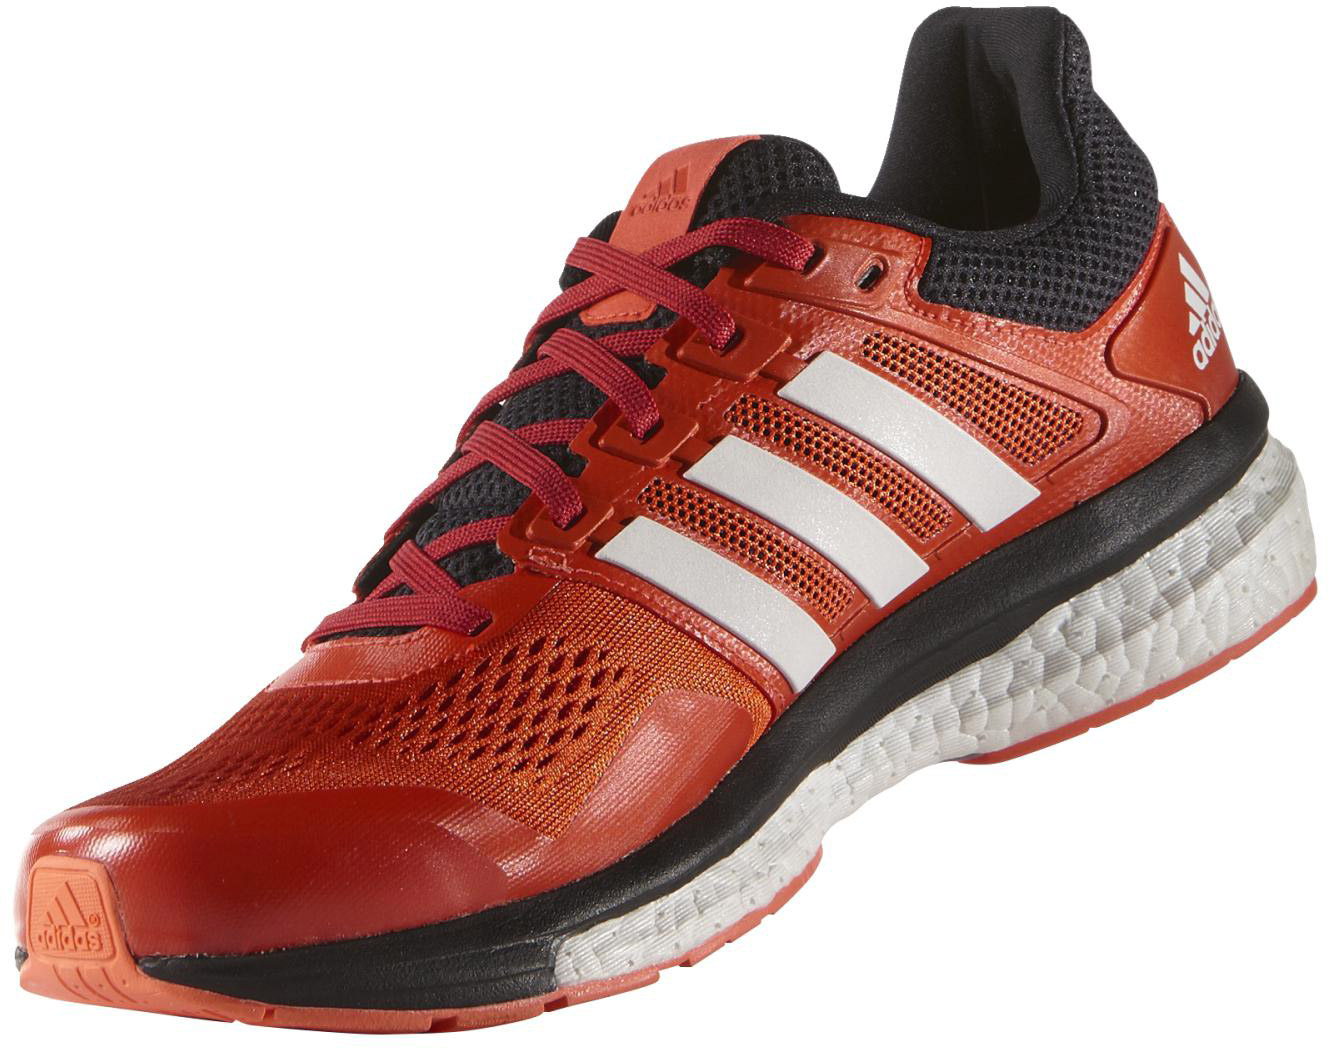 meet 09305 00c09 ... new zealand adidas supernova glide boost 8 m. mens running shoes ce366  b5364 ...